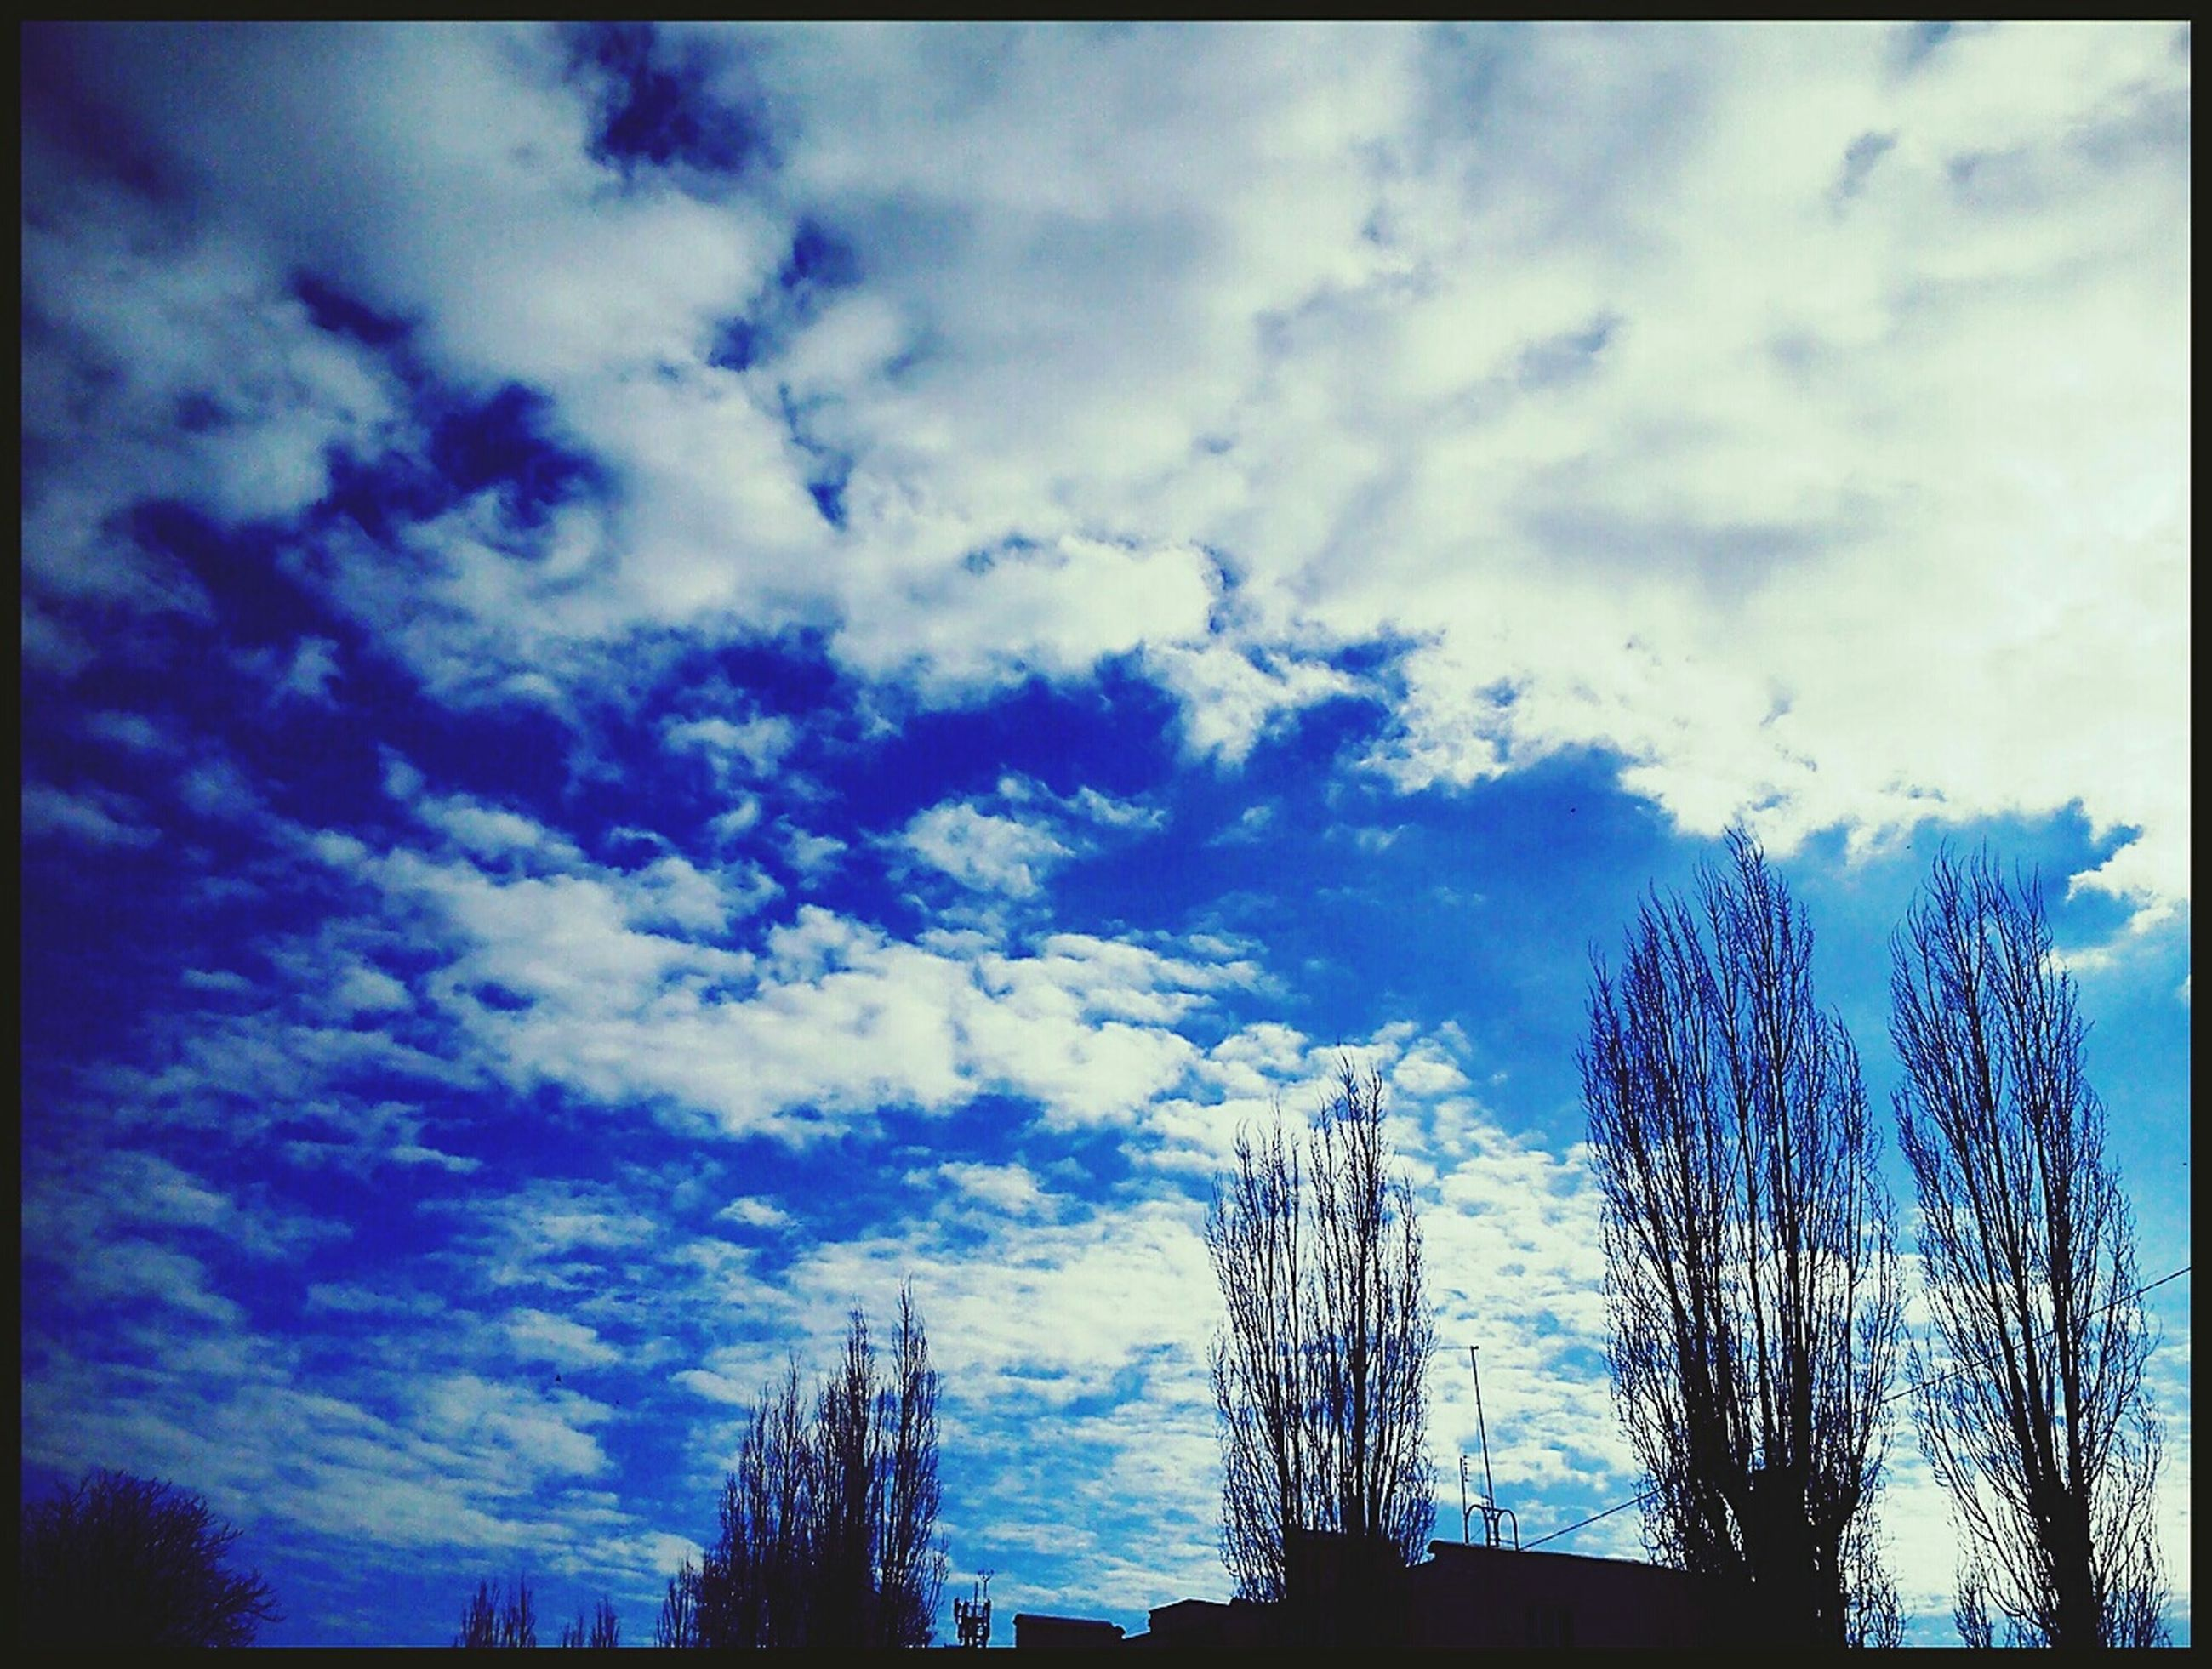 sky, transfer print, low angle view, silhouette, cloud - sky, auto post production filter, blue, cloud, cloudy, beauty in nature, tree, nature, tranquility, scenics, sunset, outdoors, tranquil scene, dusk, no people, growth